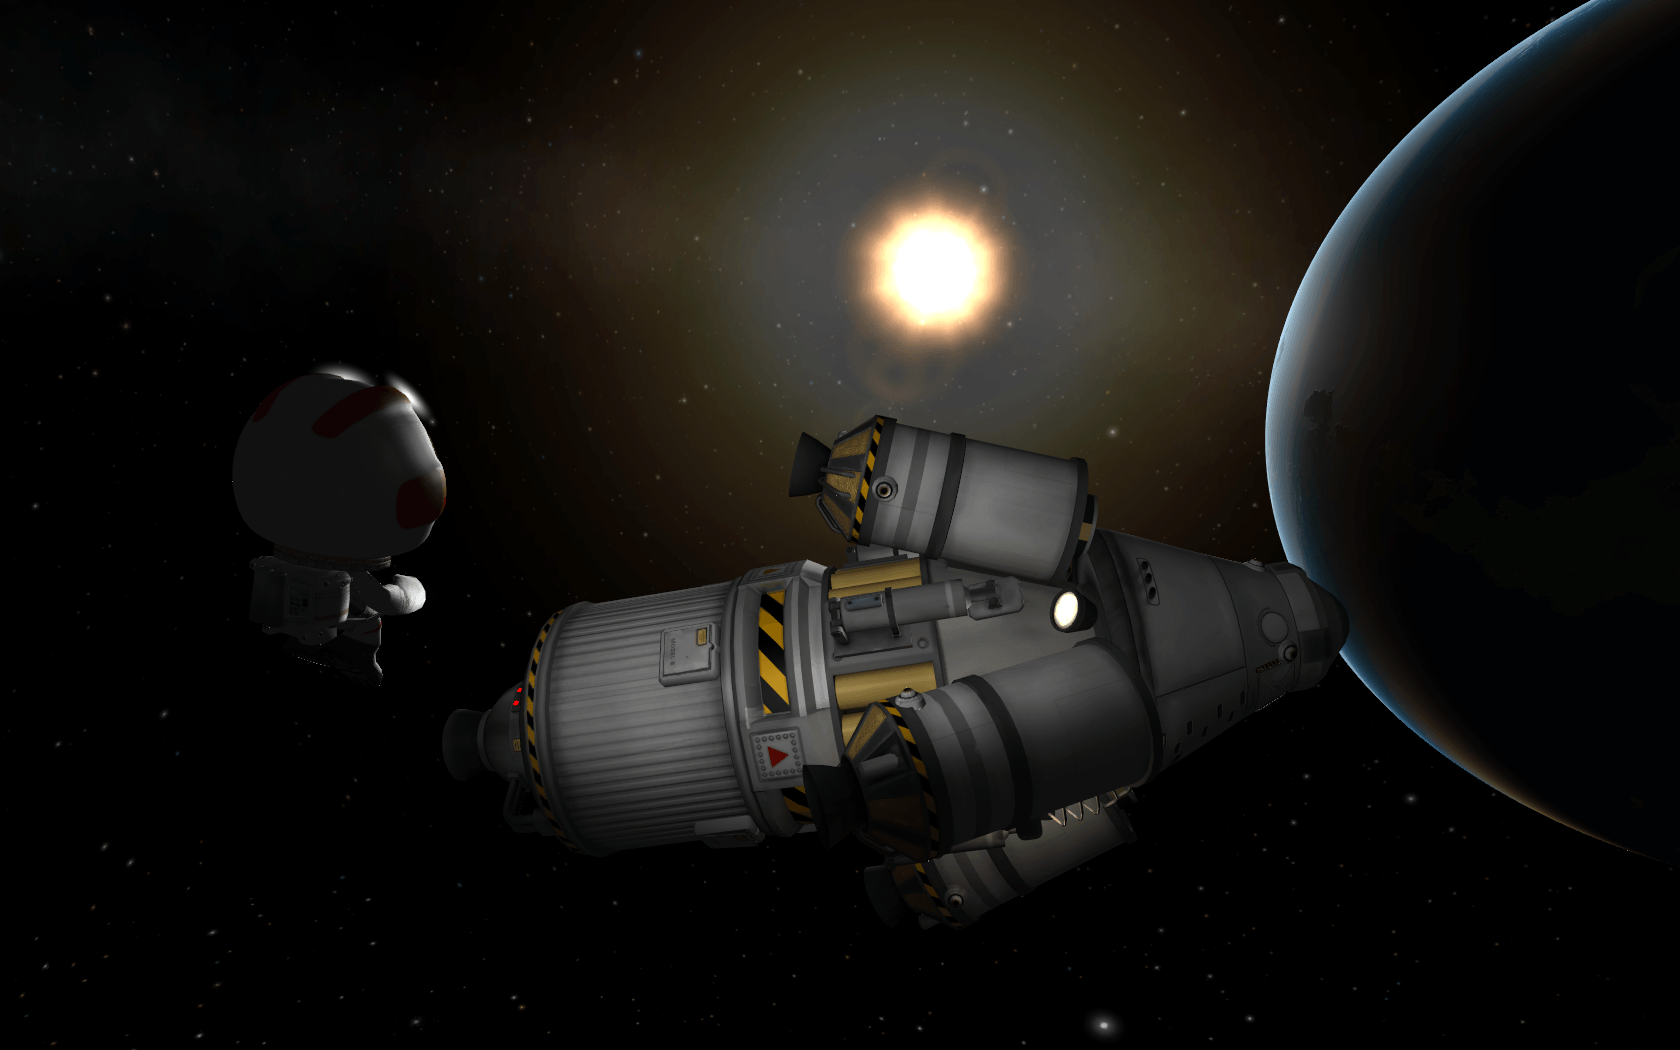 Captura de pantalla de Kerbal Space Program